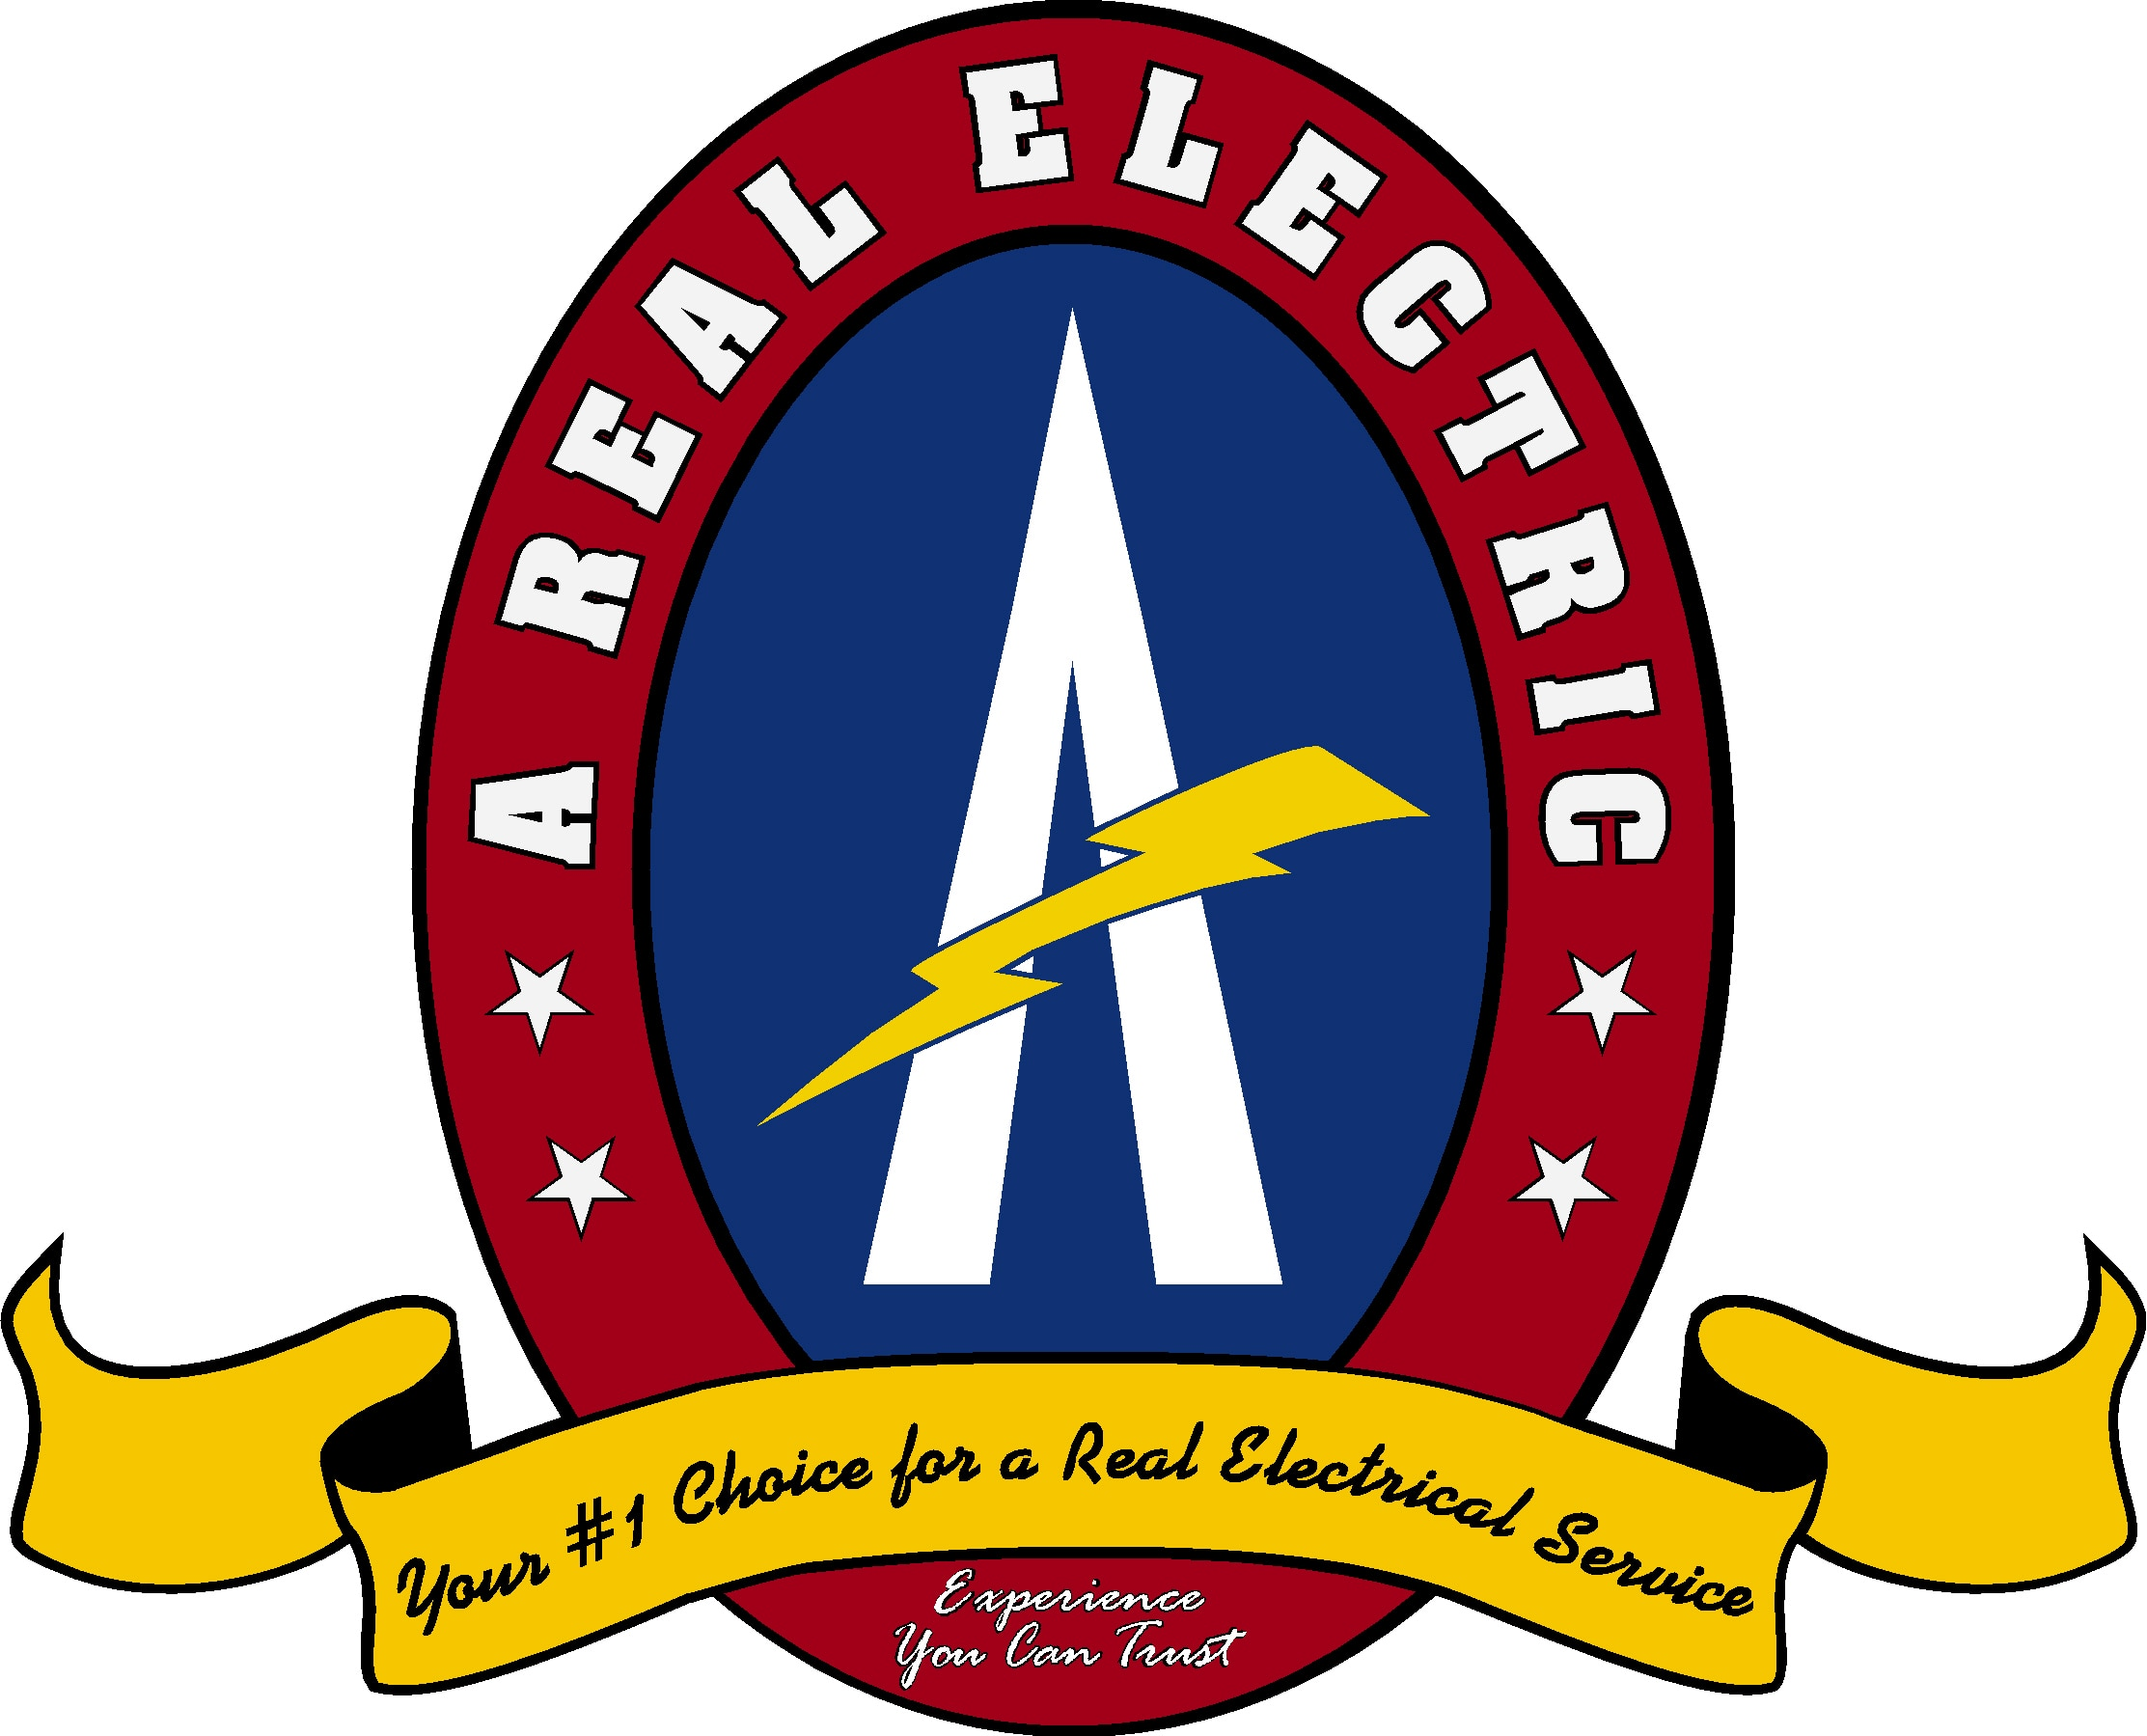 A Real Electric Inc logo